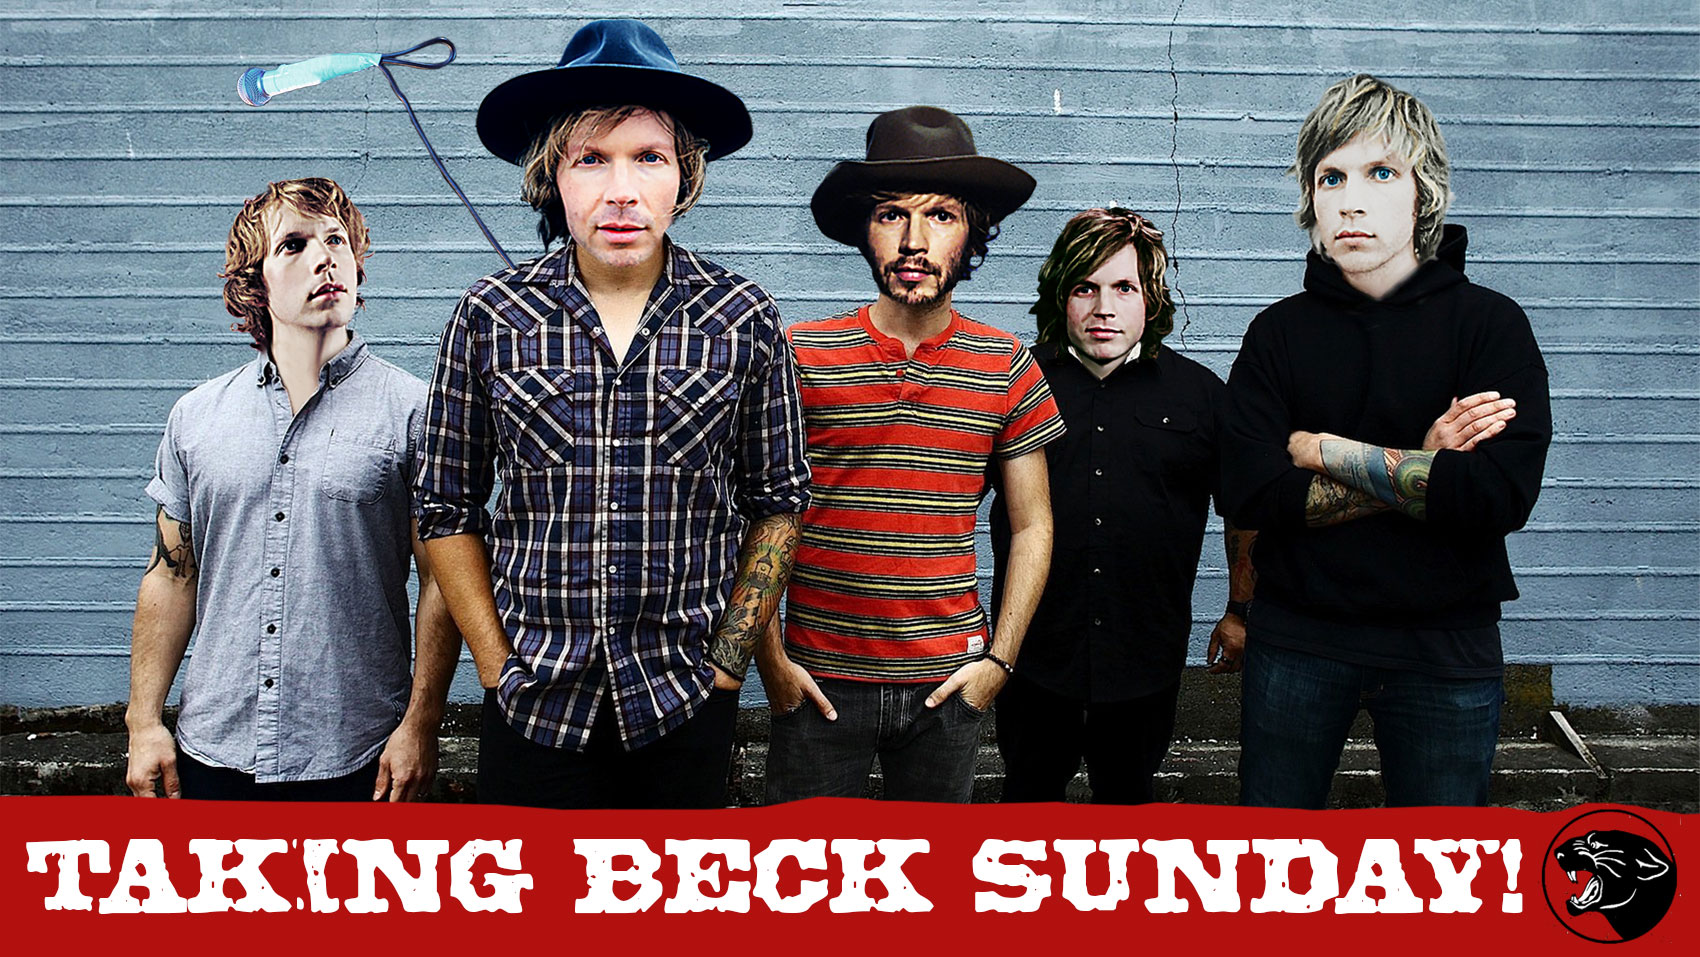 TAKING_BECK_SUNDAY_2(1)